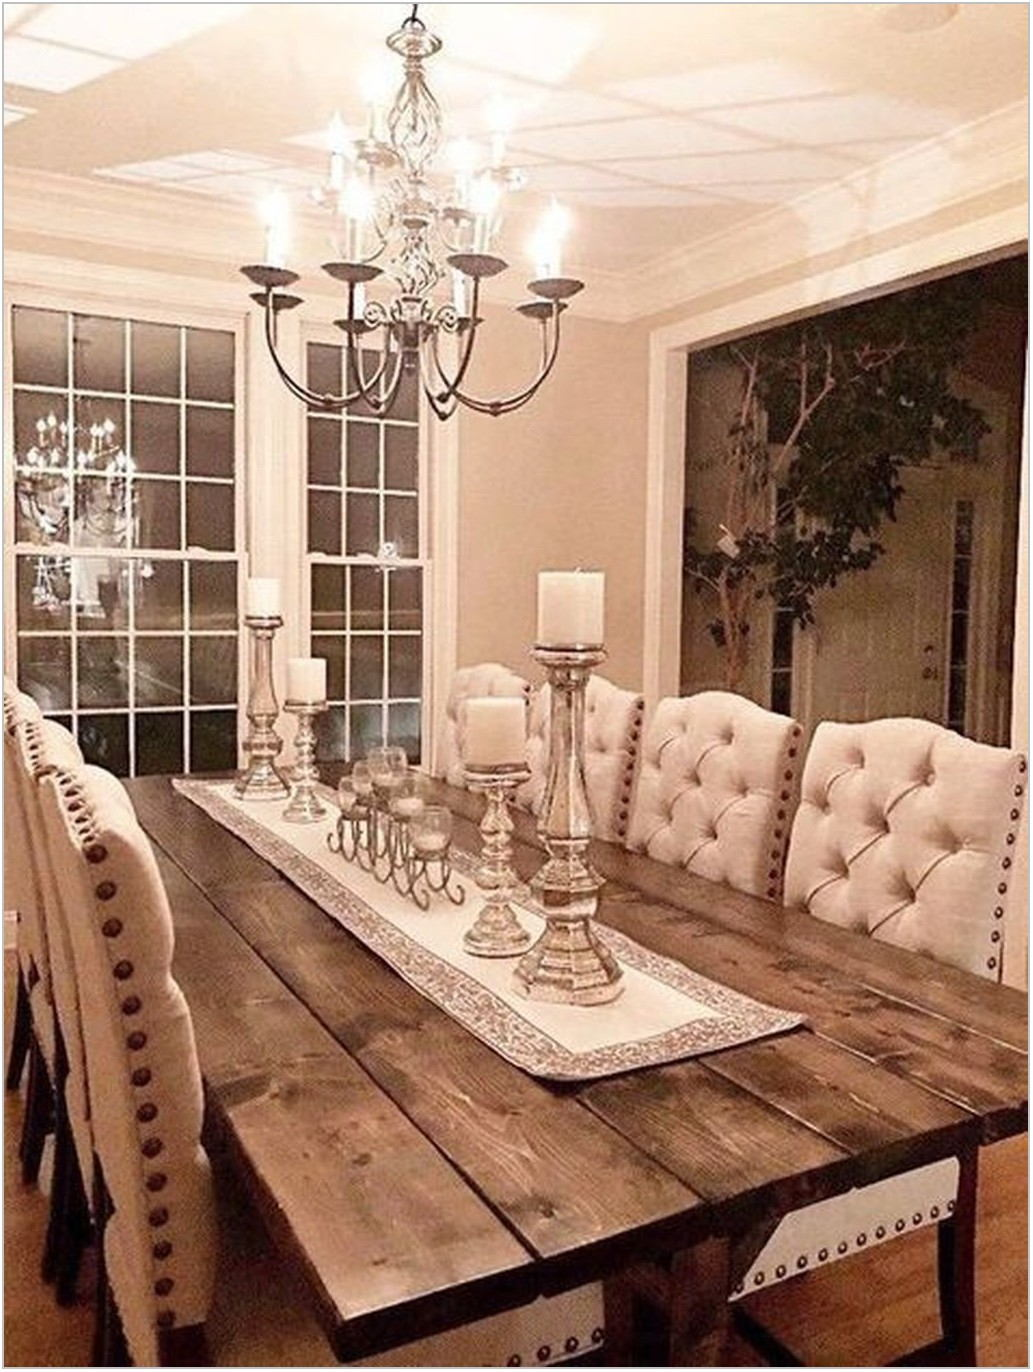 Rustic Centerpieces For Dining Room Tables